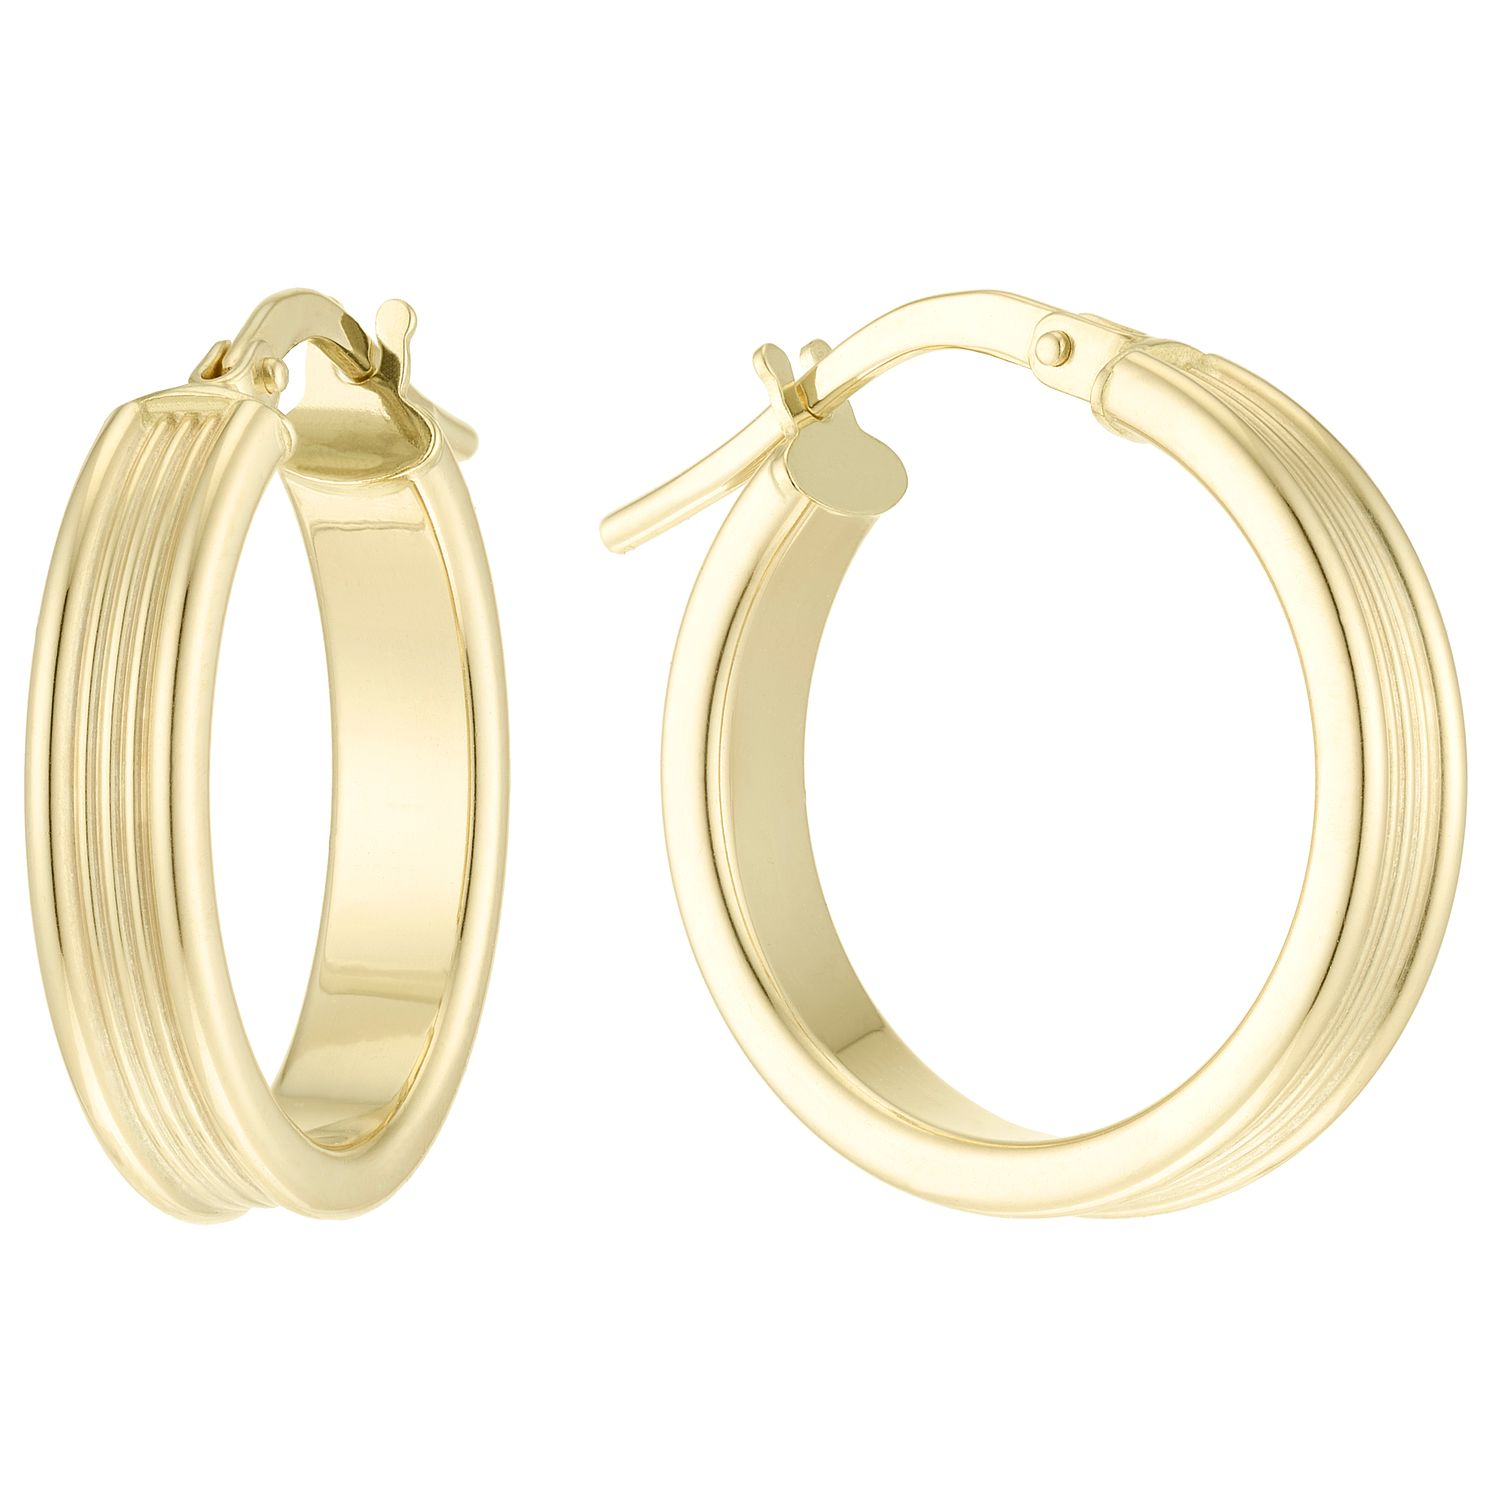 9ct Yellow Gold Ribbed 15mm Hoop Earrings - Product number 6129854